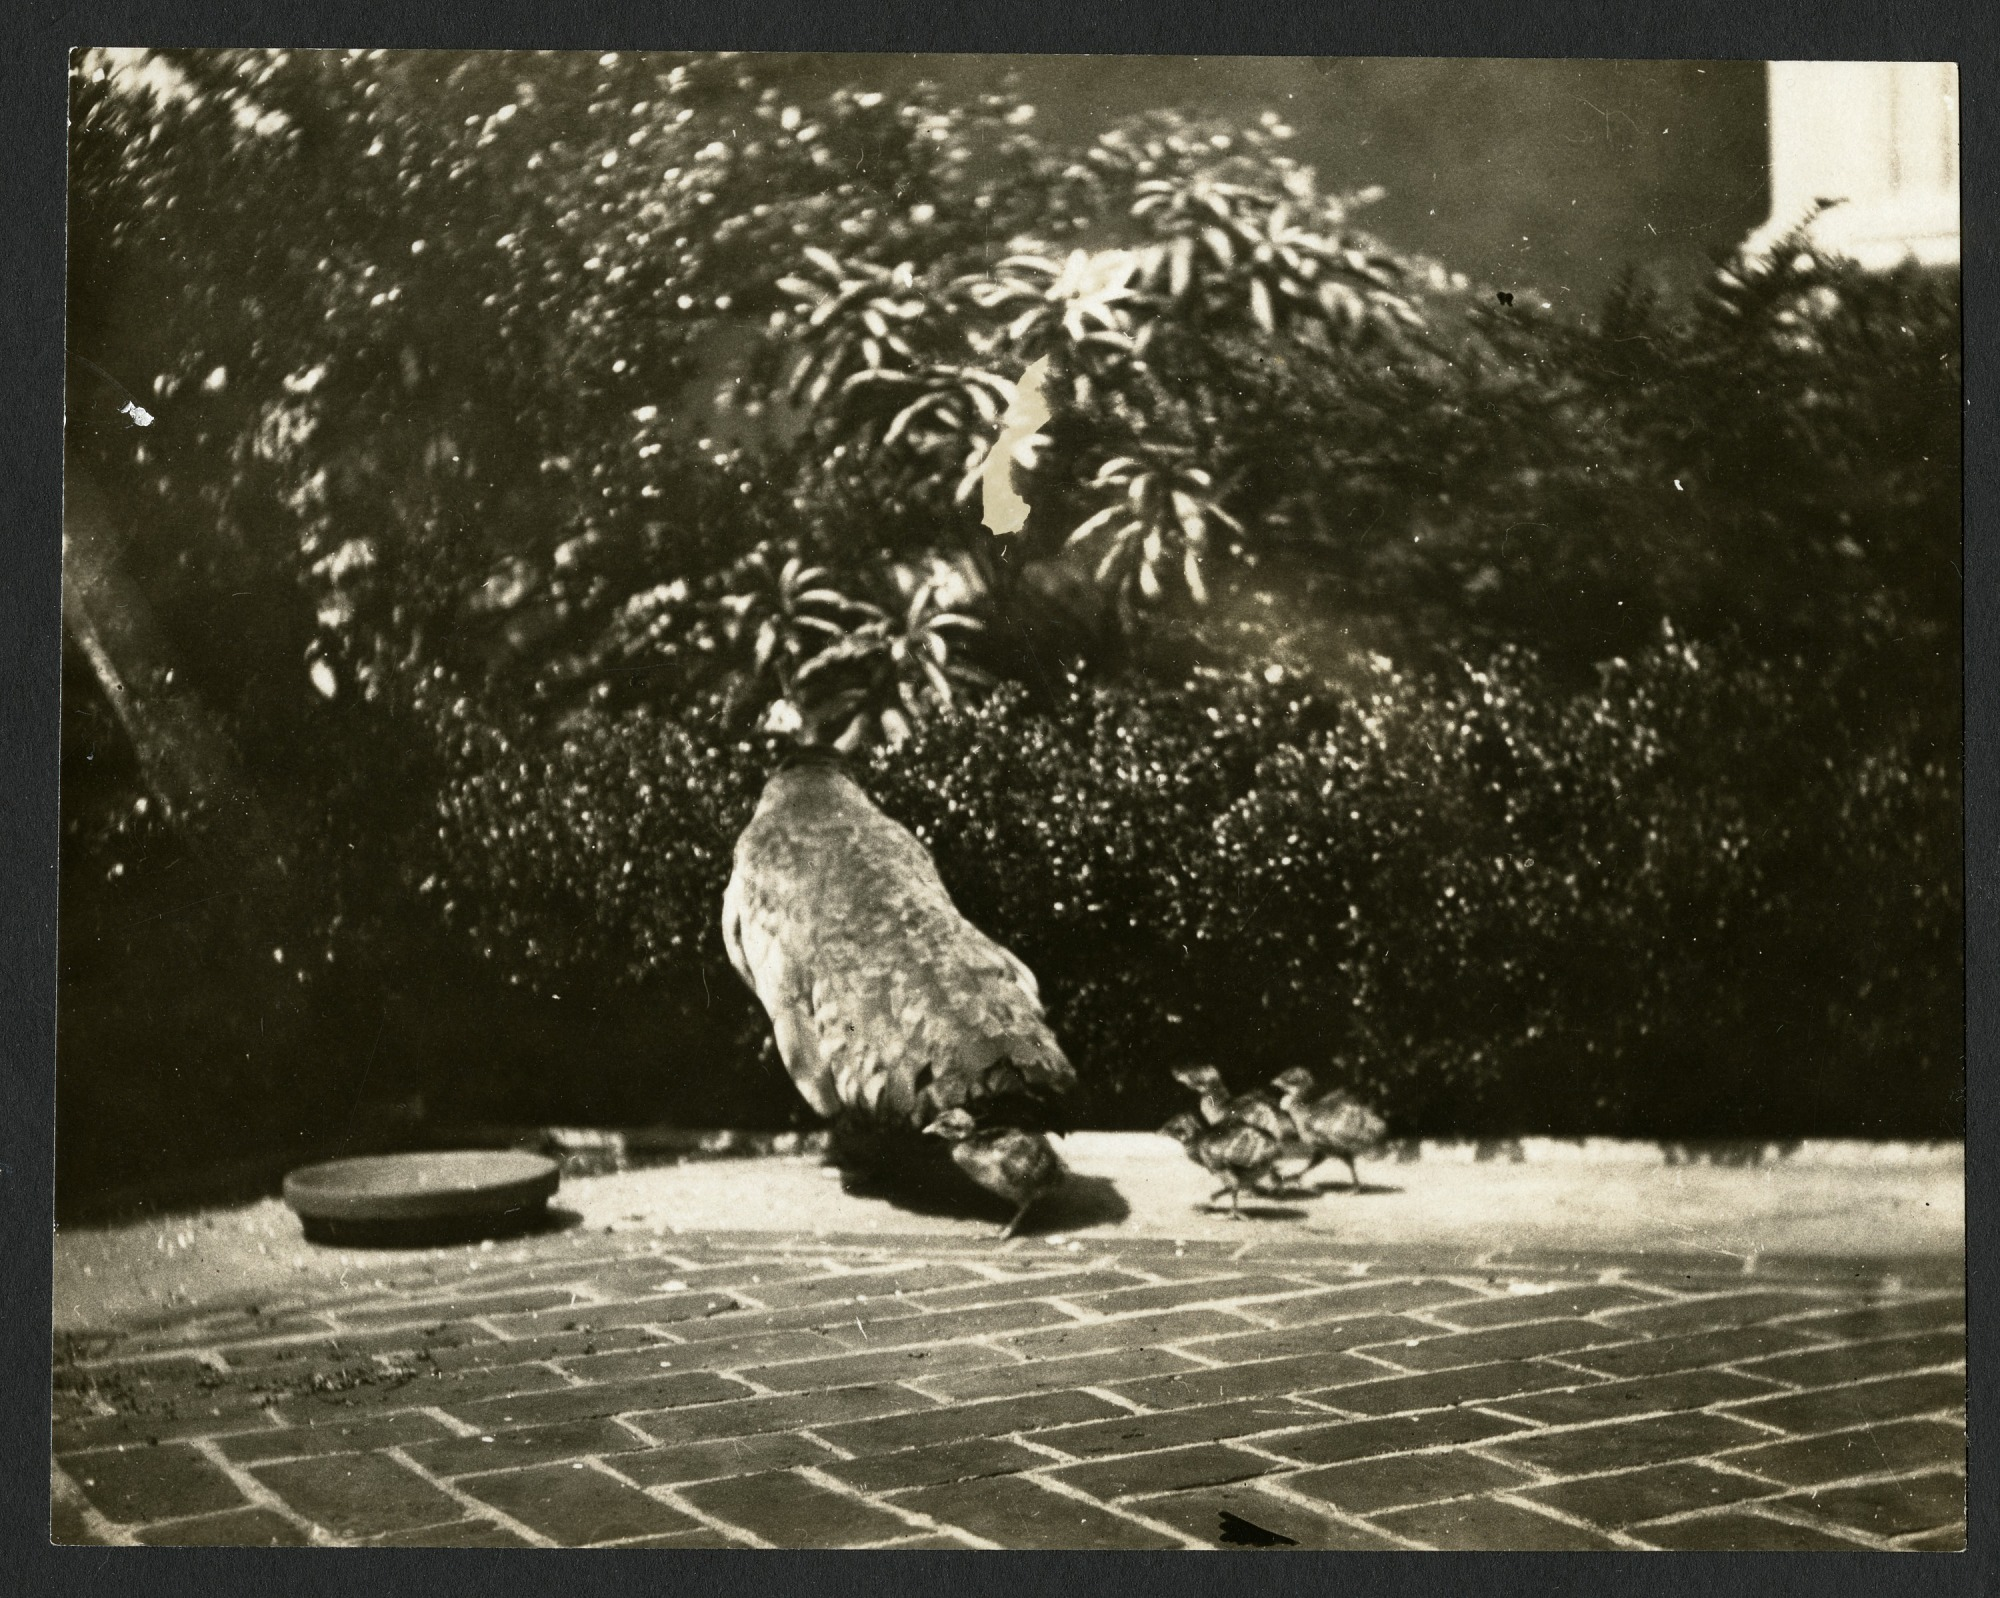 Preview of Peacock and Babies in the Freer Gallery of Art Courtyard